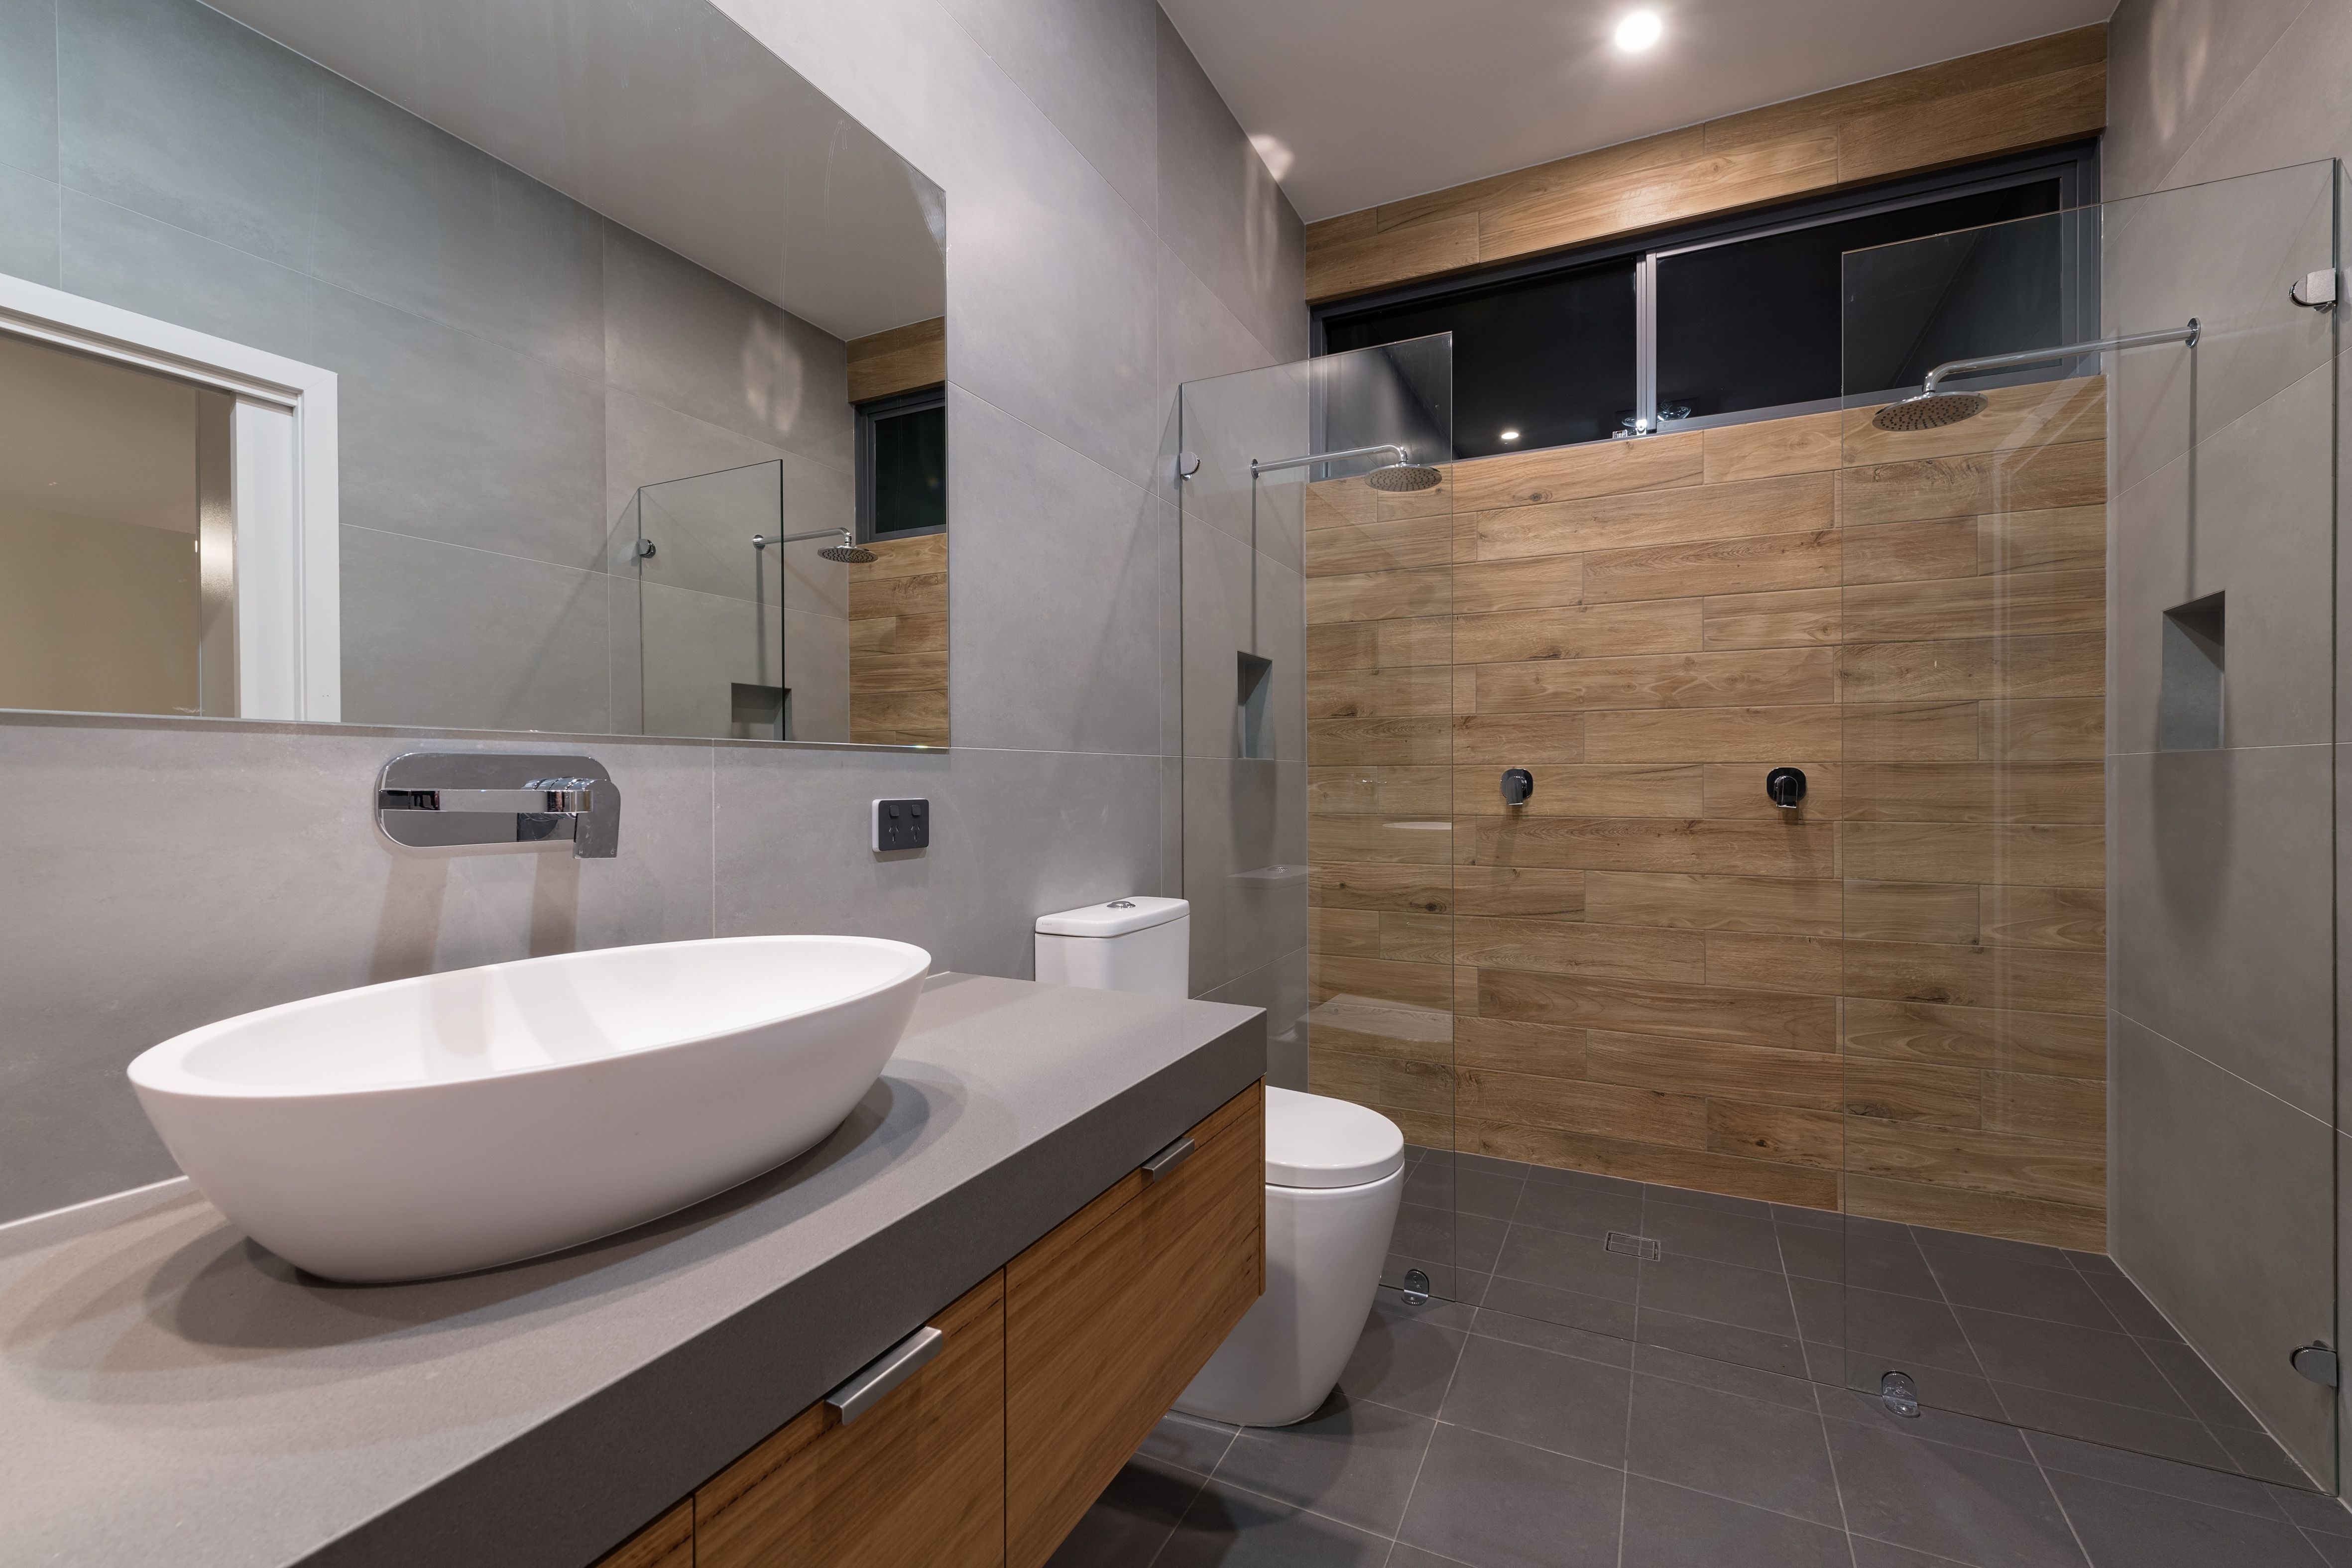 Luxury Ensuite Double Shower Timber Tile Feature Wall Concrete Look Vanity Bench Oval Vanity Frameless Glass Screens Slate Tiles Super Size Grey Wall Til